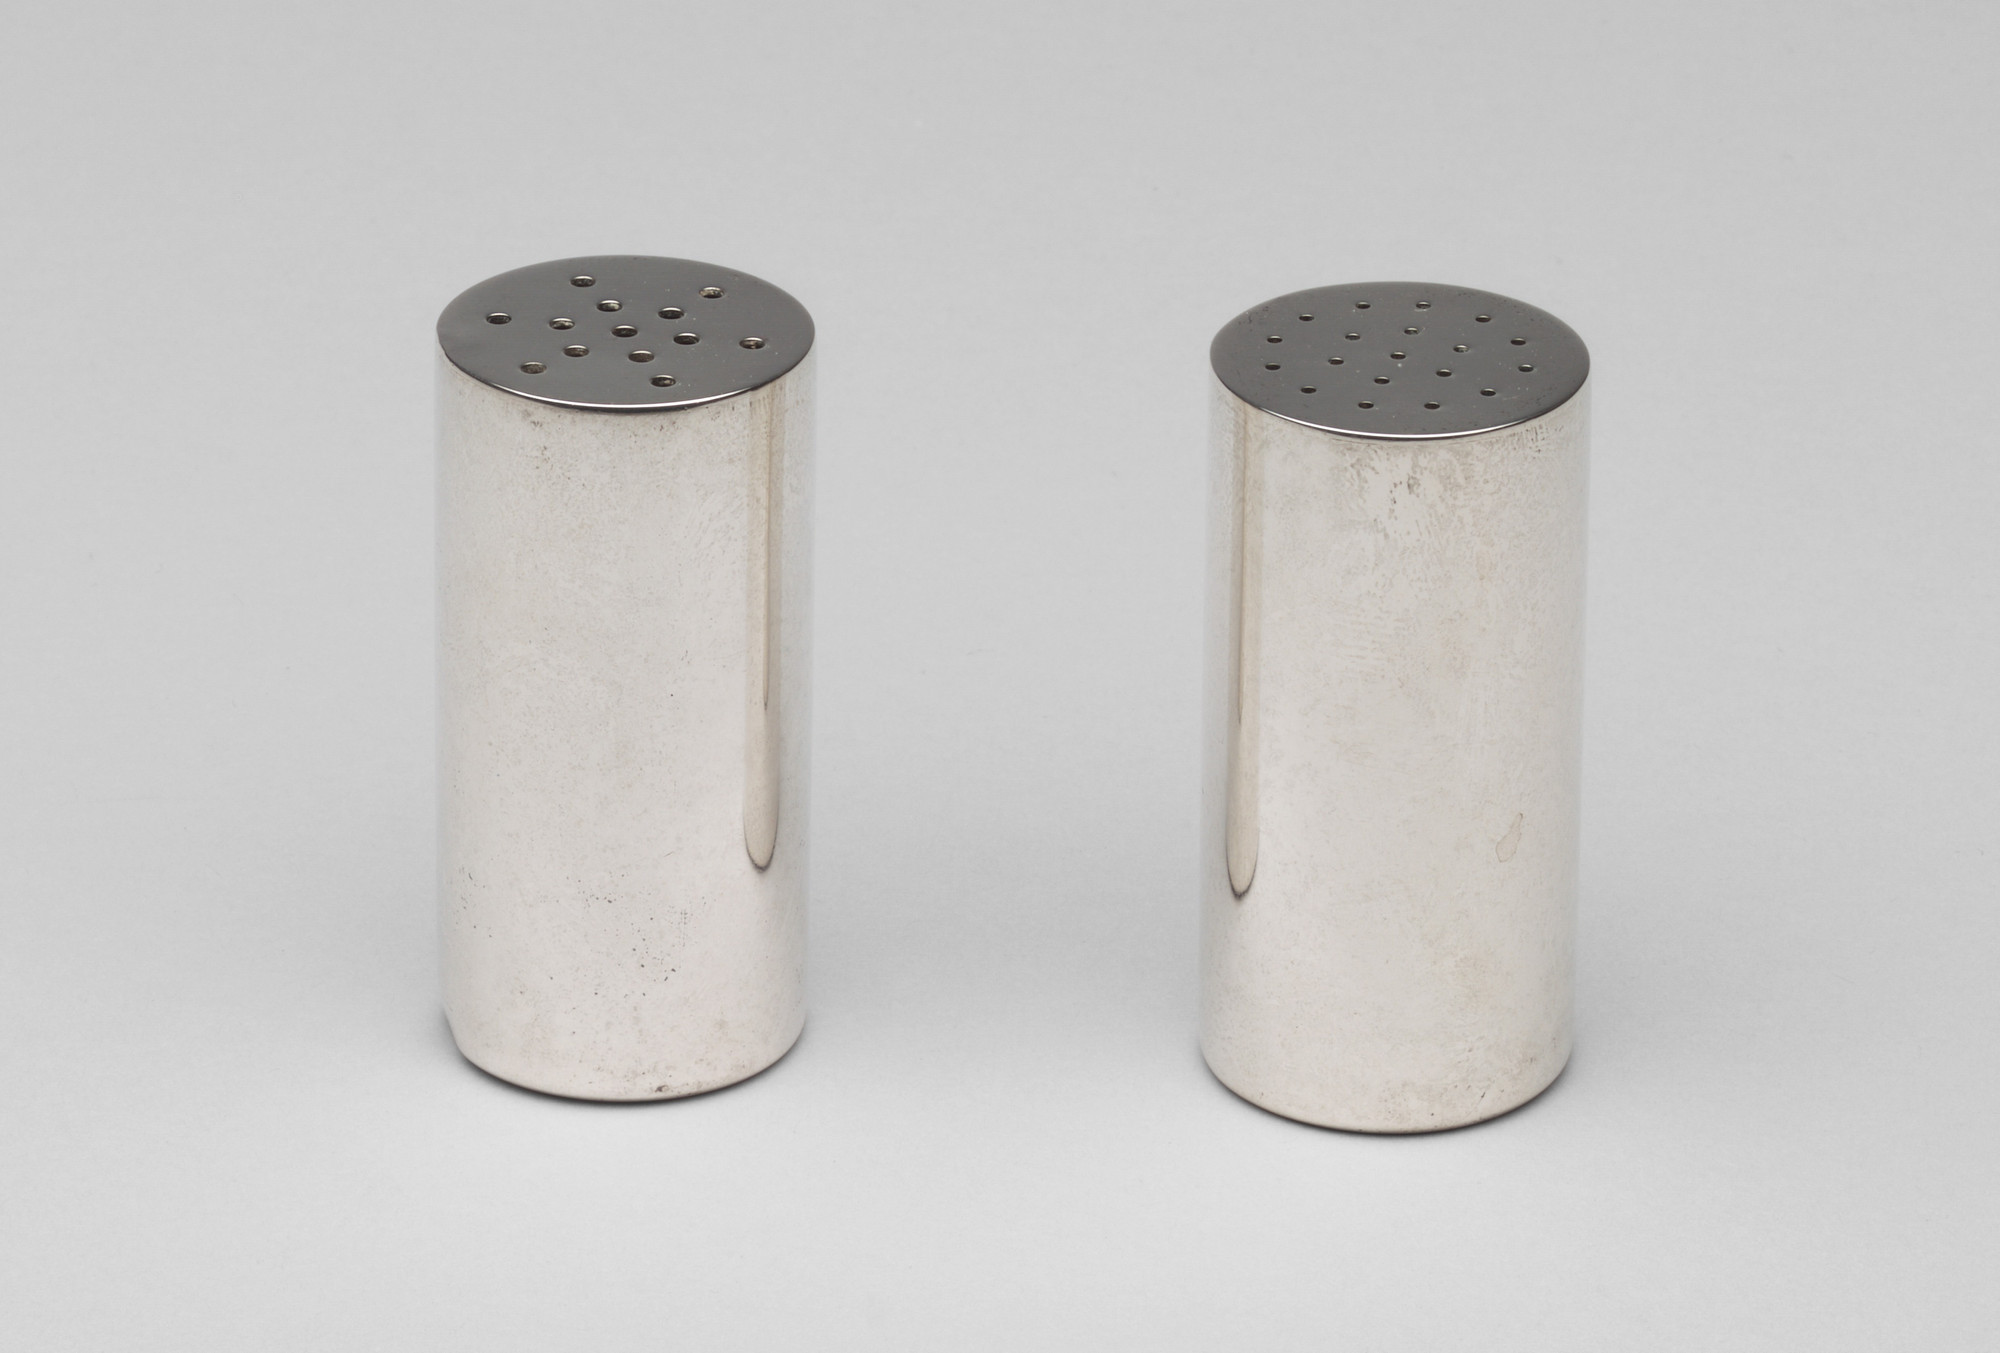 Allan Adler. Salt and Pepper Shakers (Exhibited in the US Pavilion in the 1951 Milan Triennale). 1949